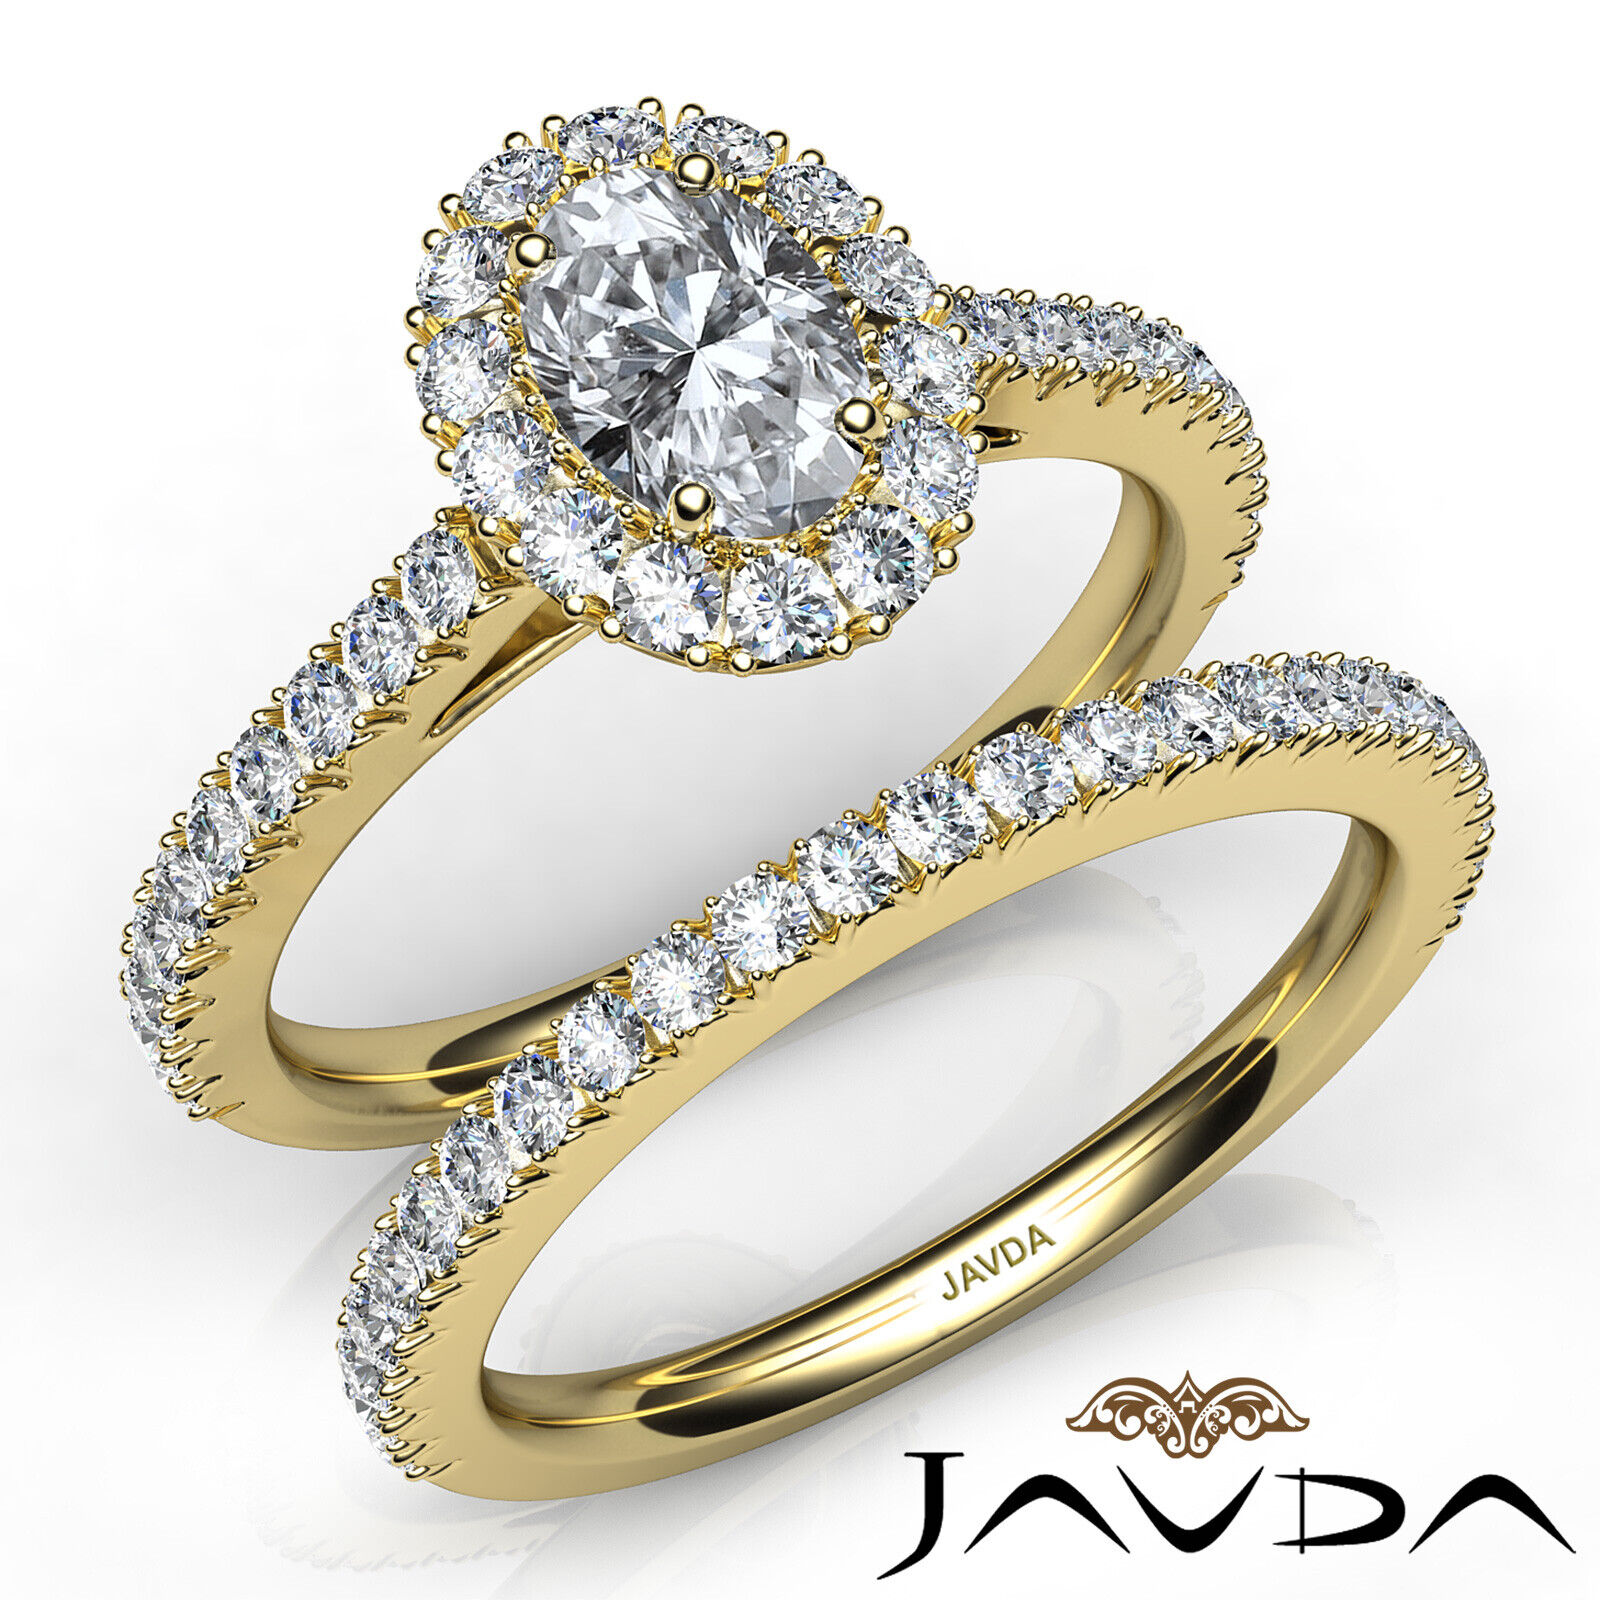 2.21ctw Halo Bridal French Pave Oval Diamond Engagement Ring GIA F-VVS2 W Gold 8